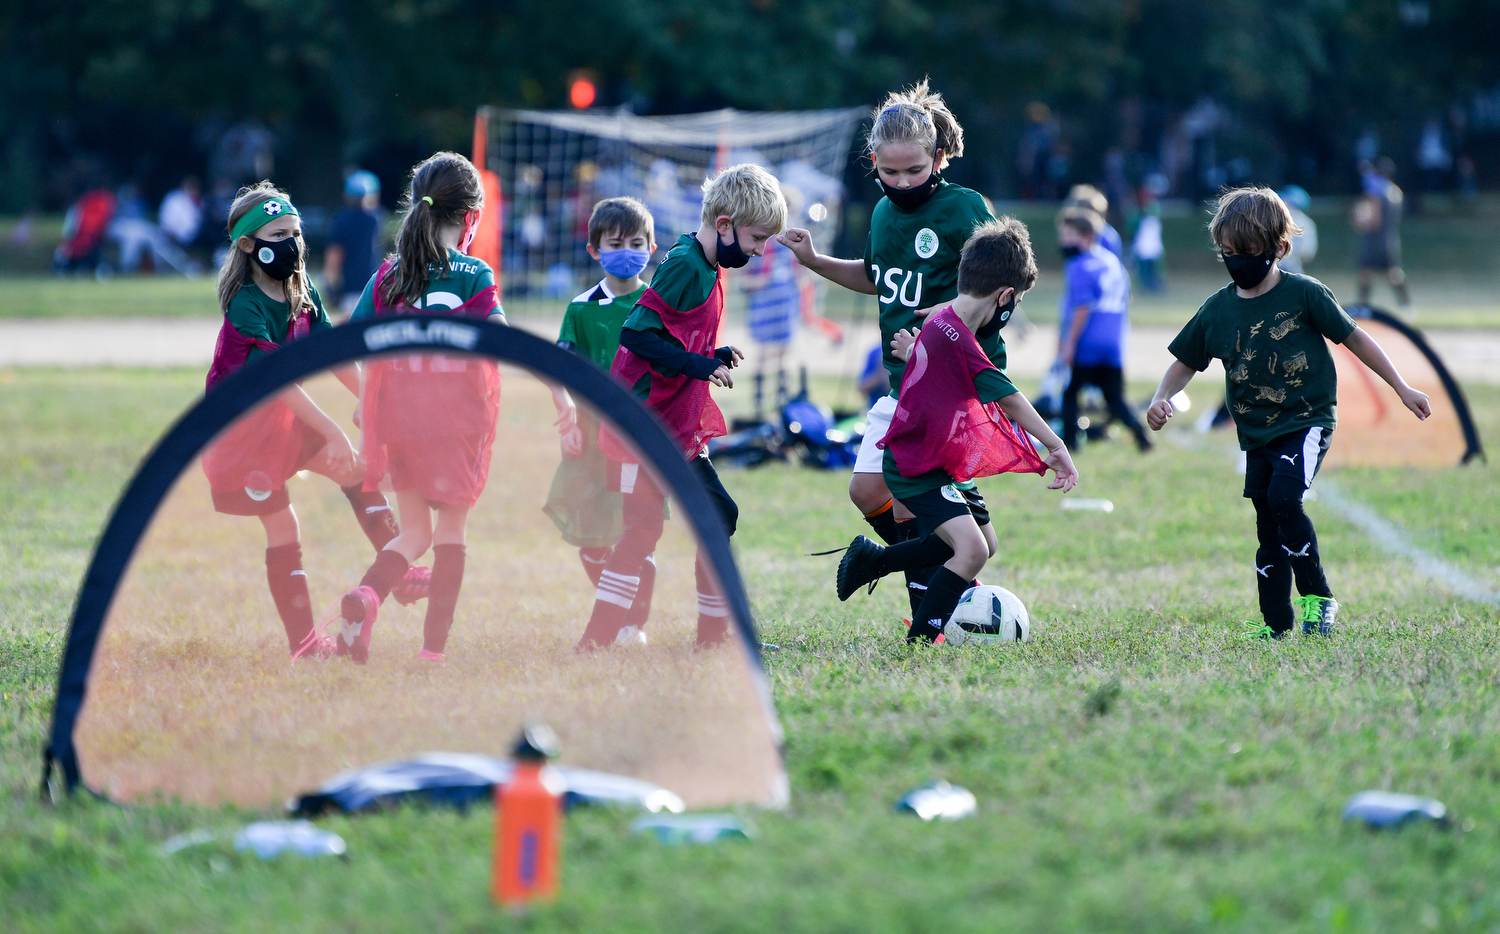 PSU (Park Slope United) soccer league at Long Meadow in Prospect Park Brooklyn NYC.